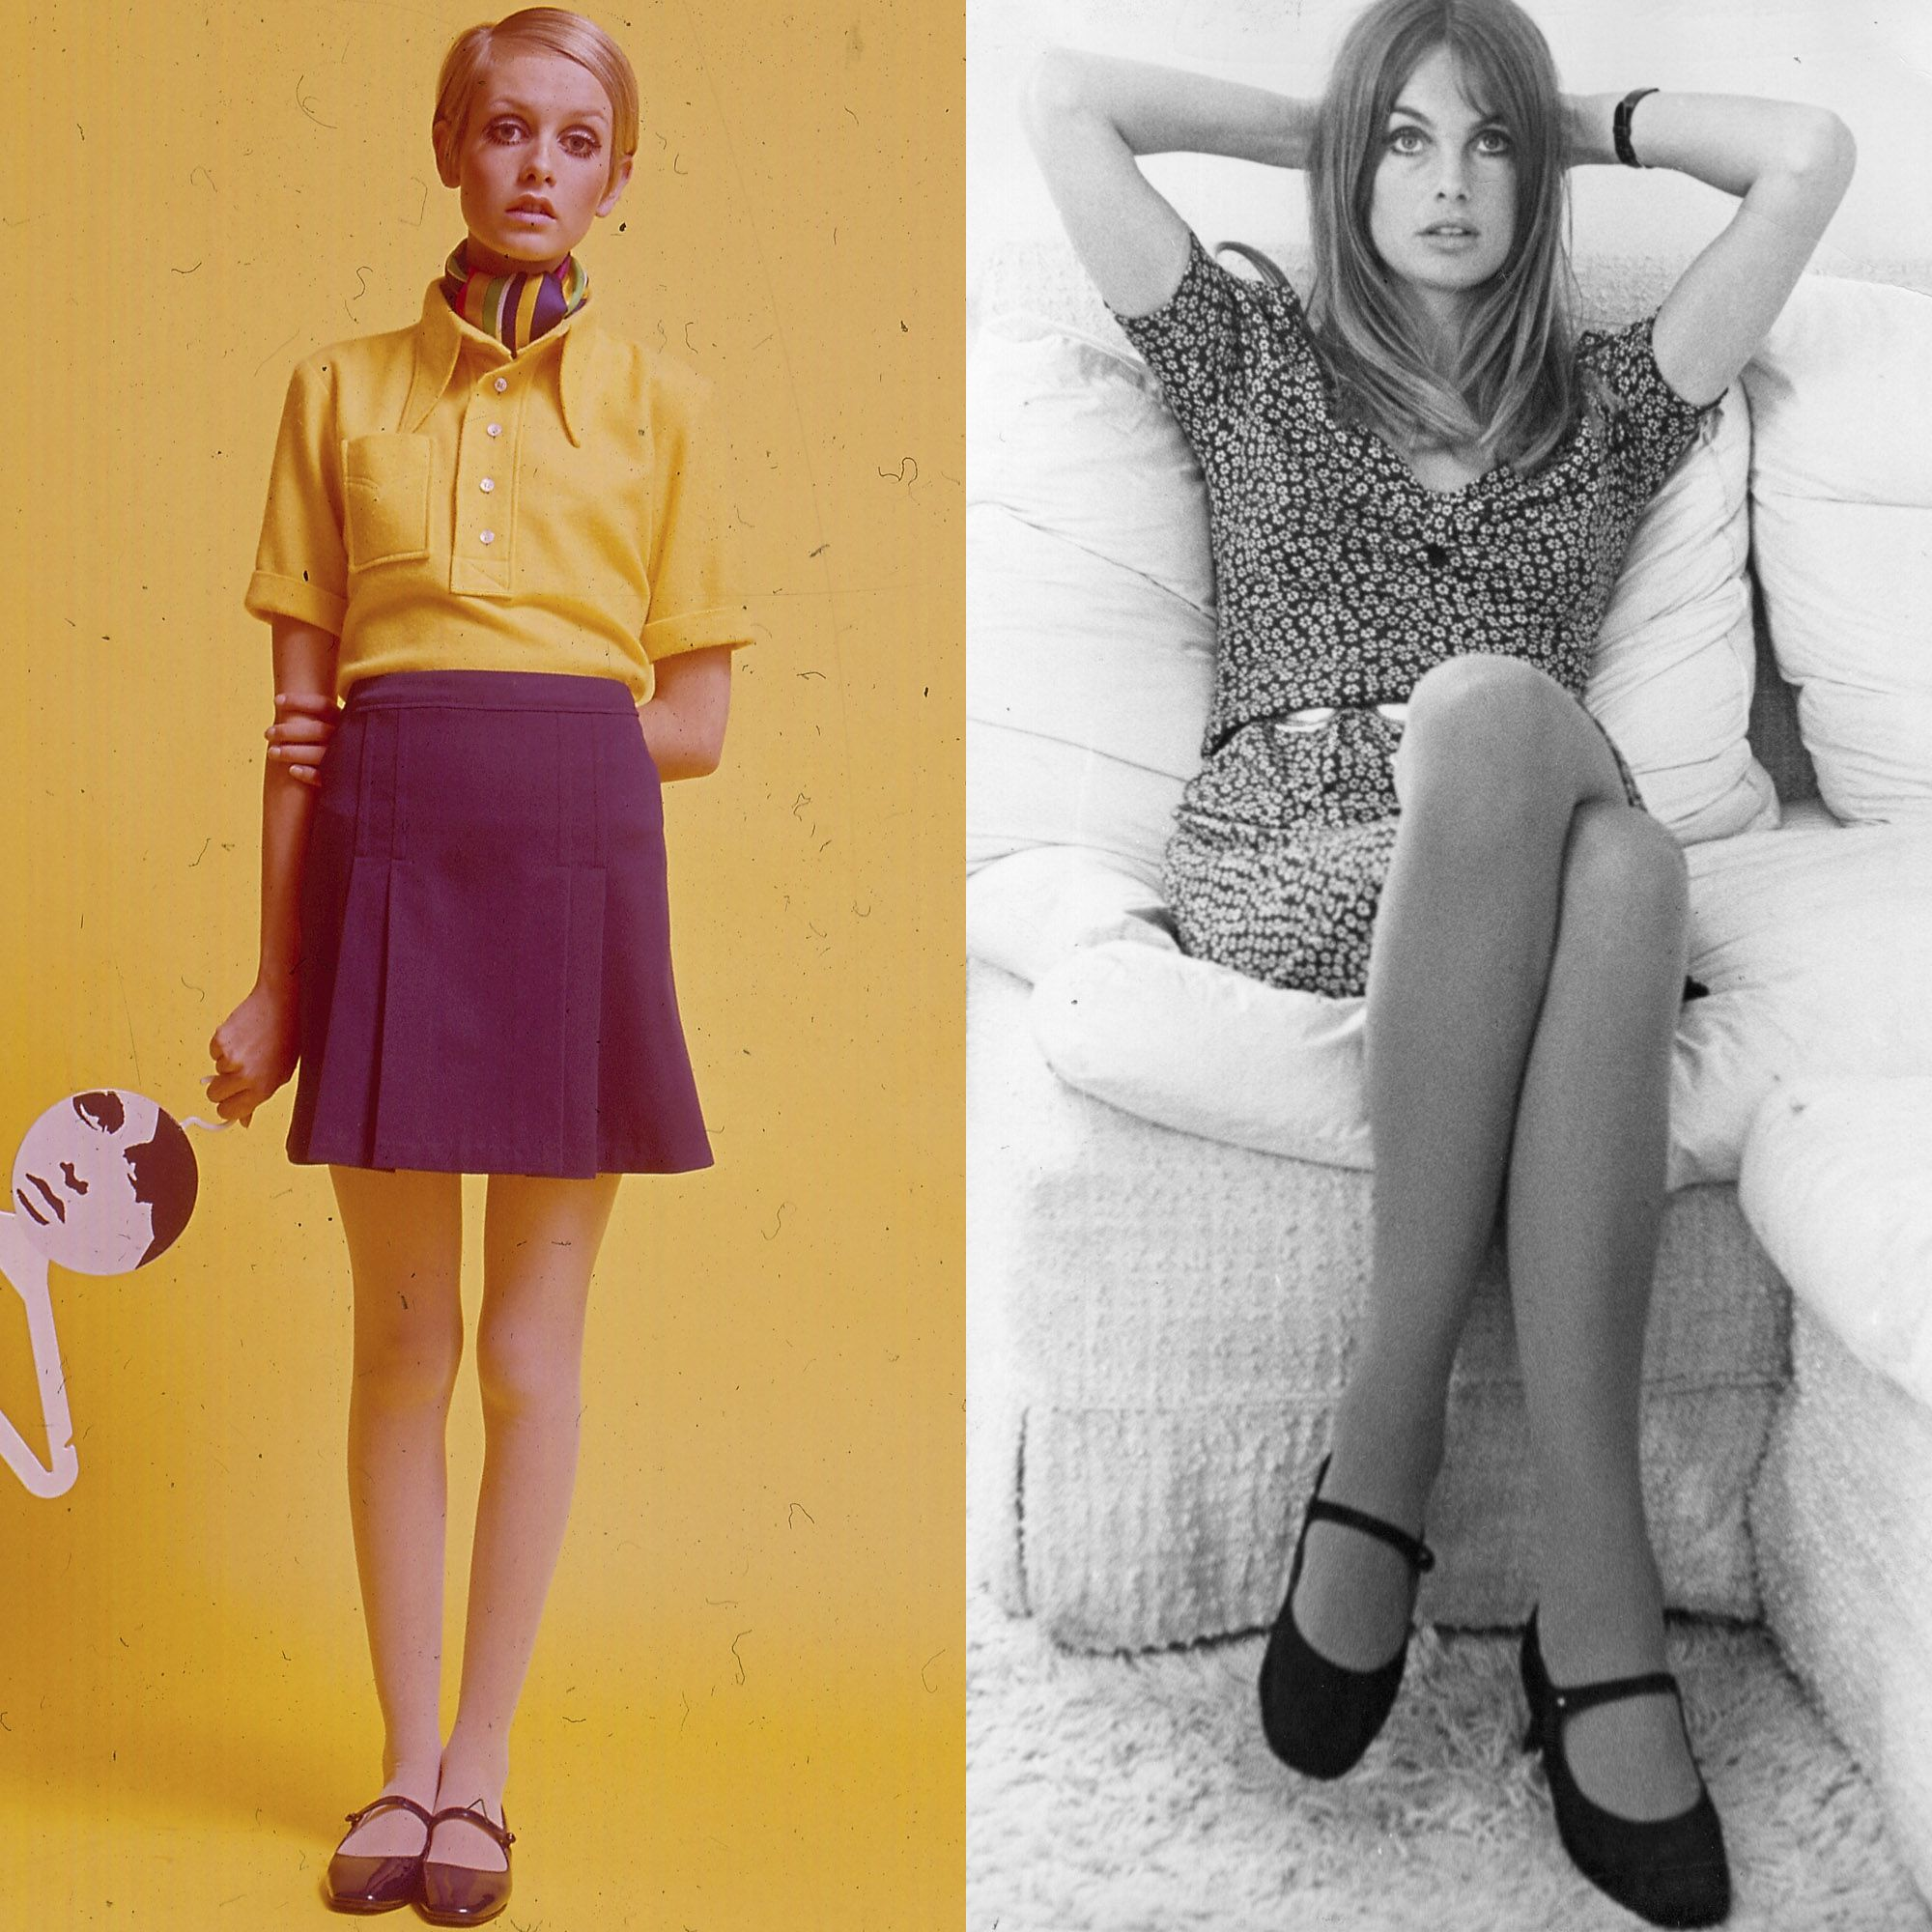 <p>The Mary Jane played a key role in model-off-duty style during the 60s, as seen on Twiggy and Jean Shrimpton.</p>